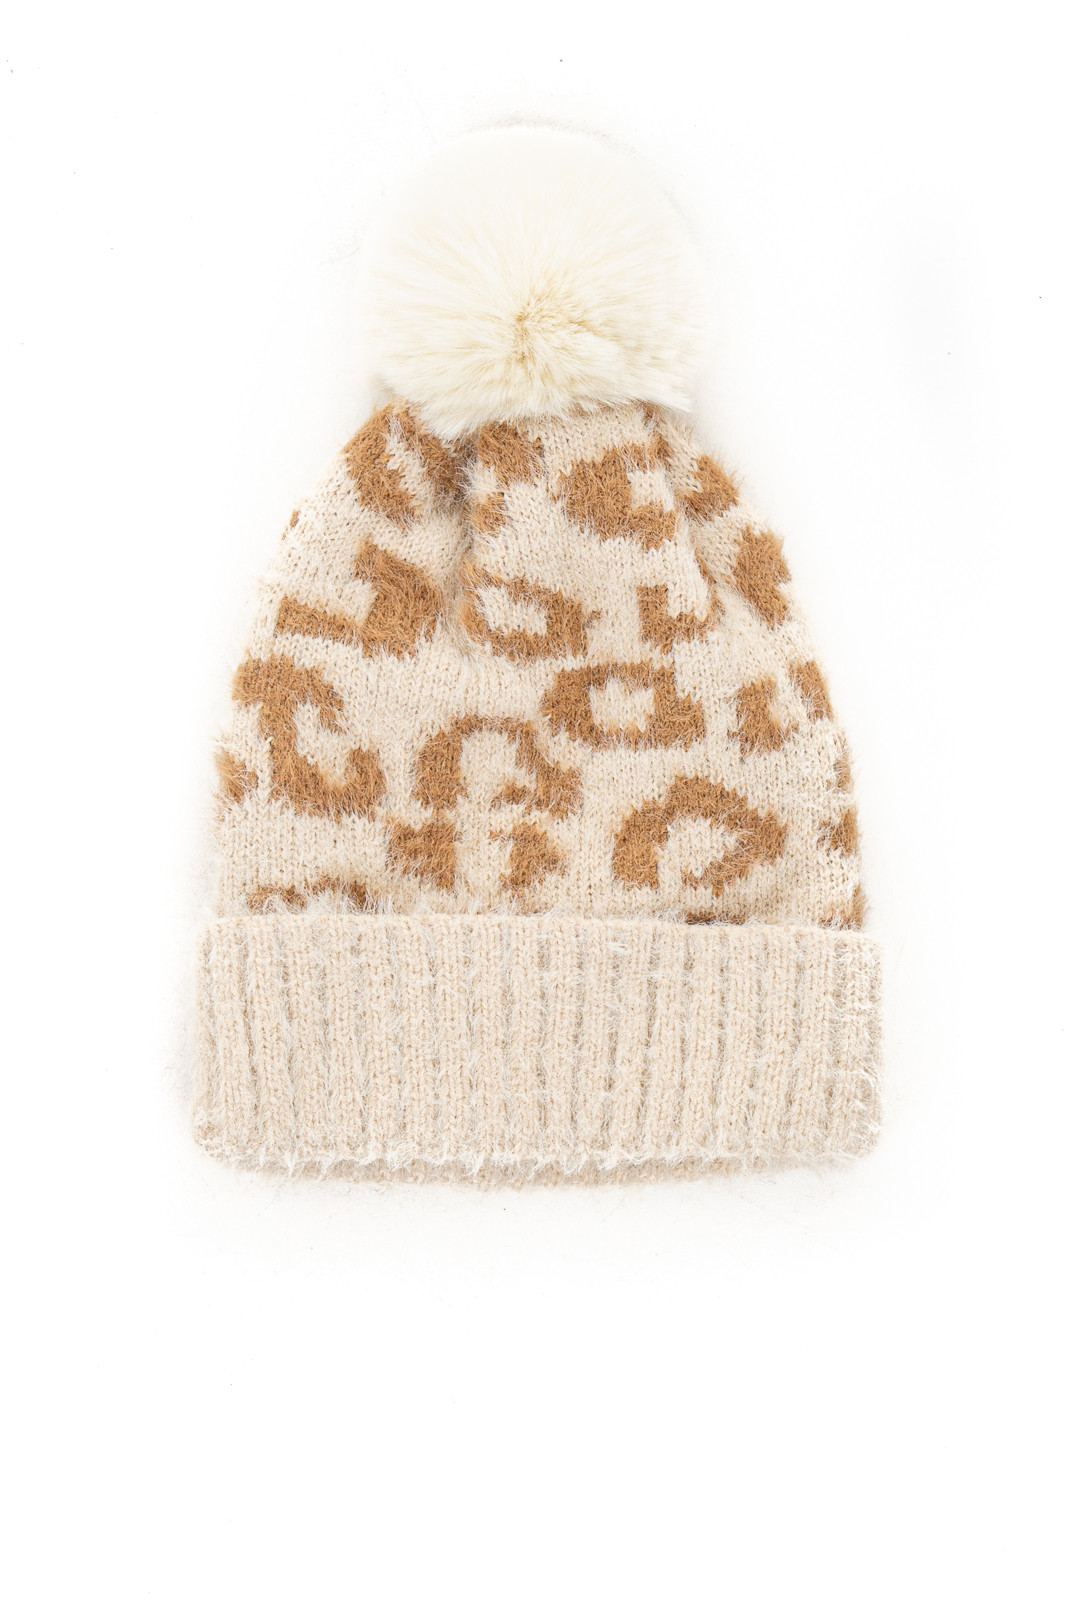 Cream and Taupe Leopard Print Beanie with Pom Pom Detail